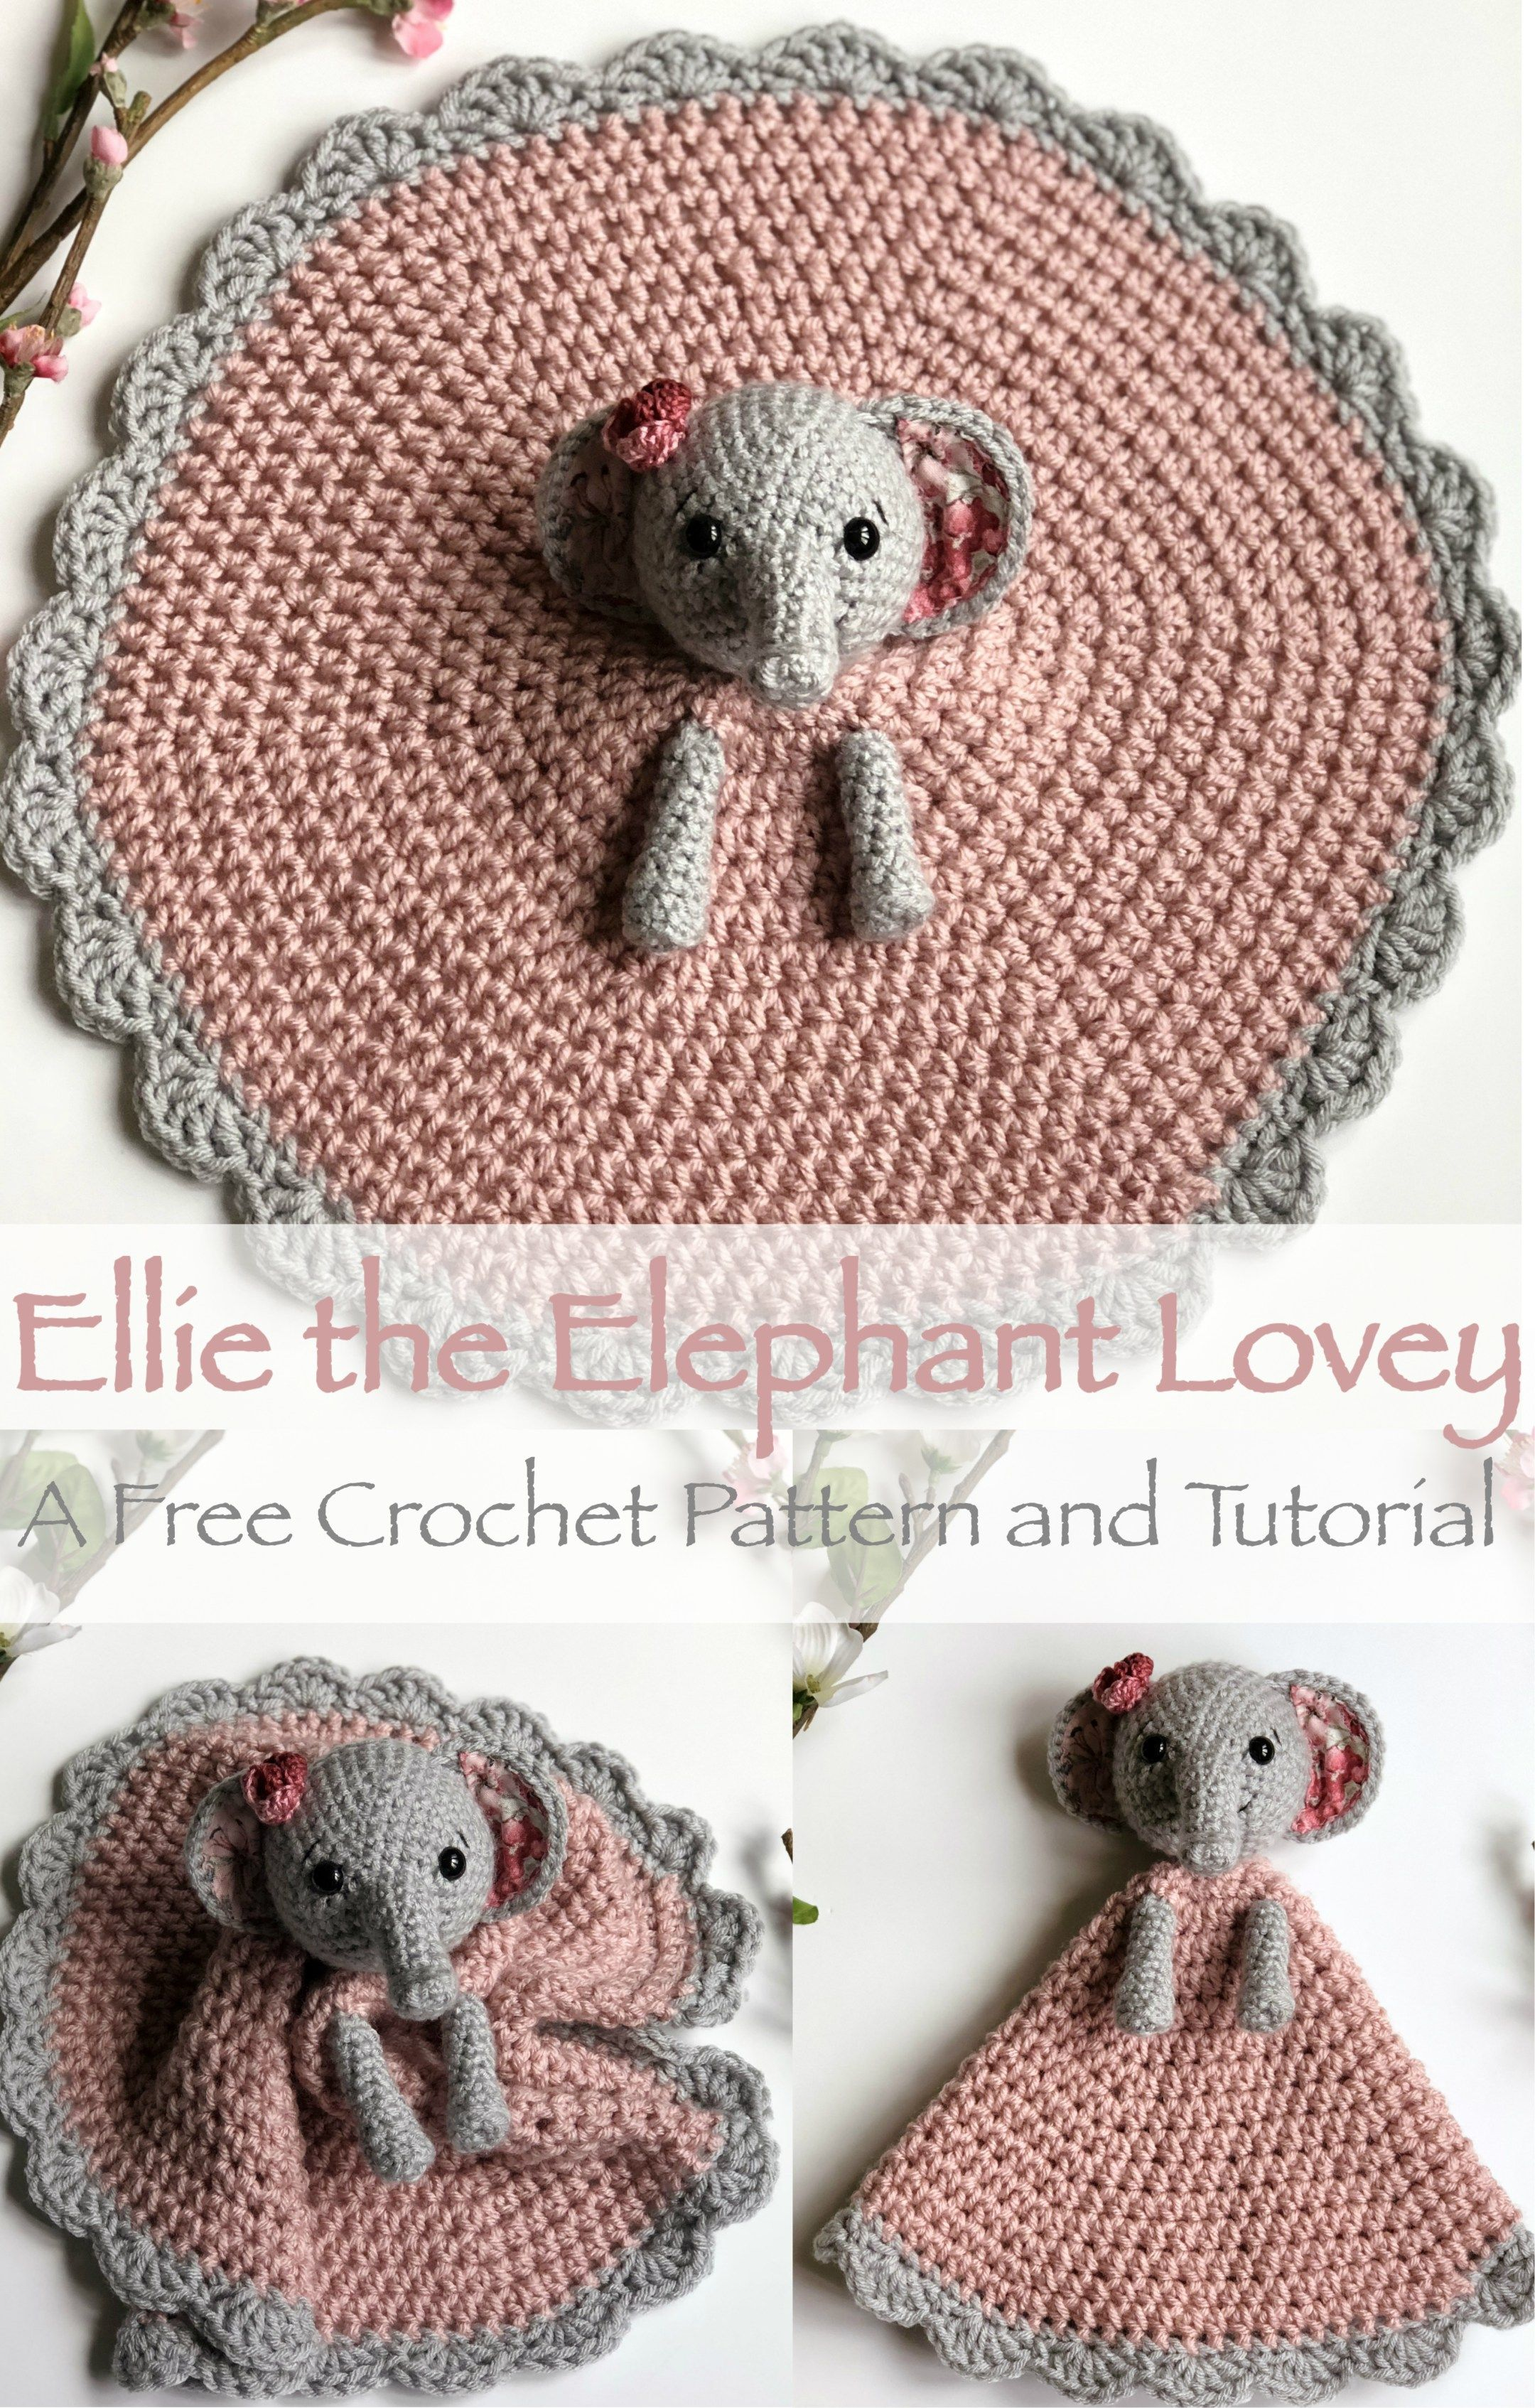 Ellie the Elephant Lovey- Free Pattern #crochetelephantpattern